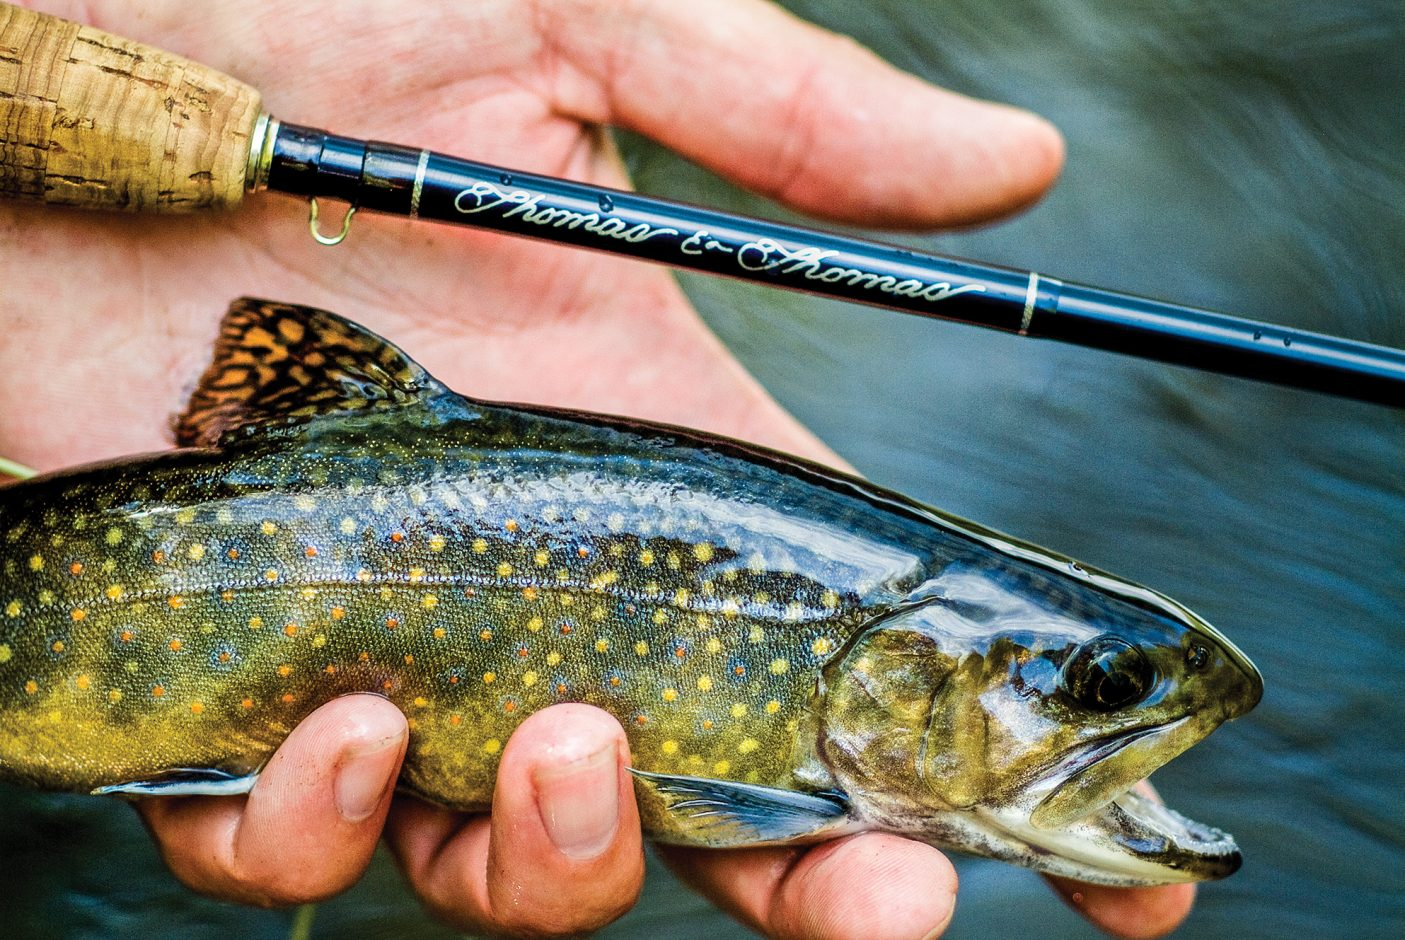 Hand holding brook trout and fly rod